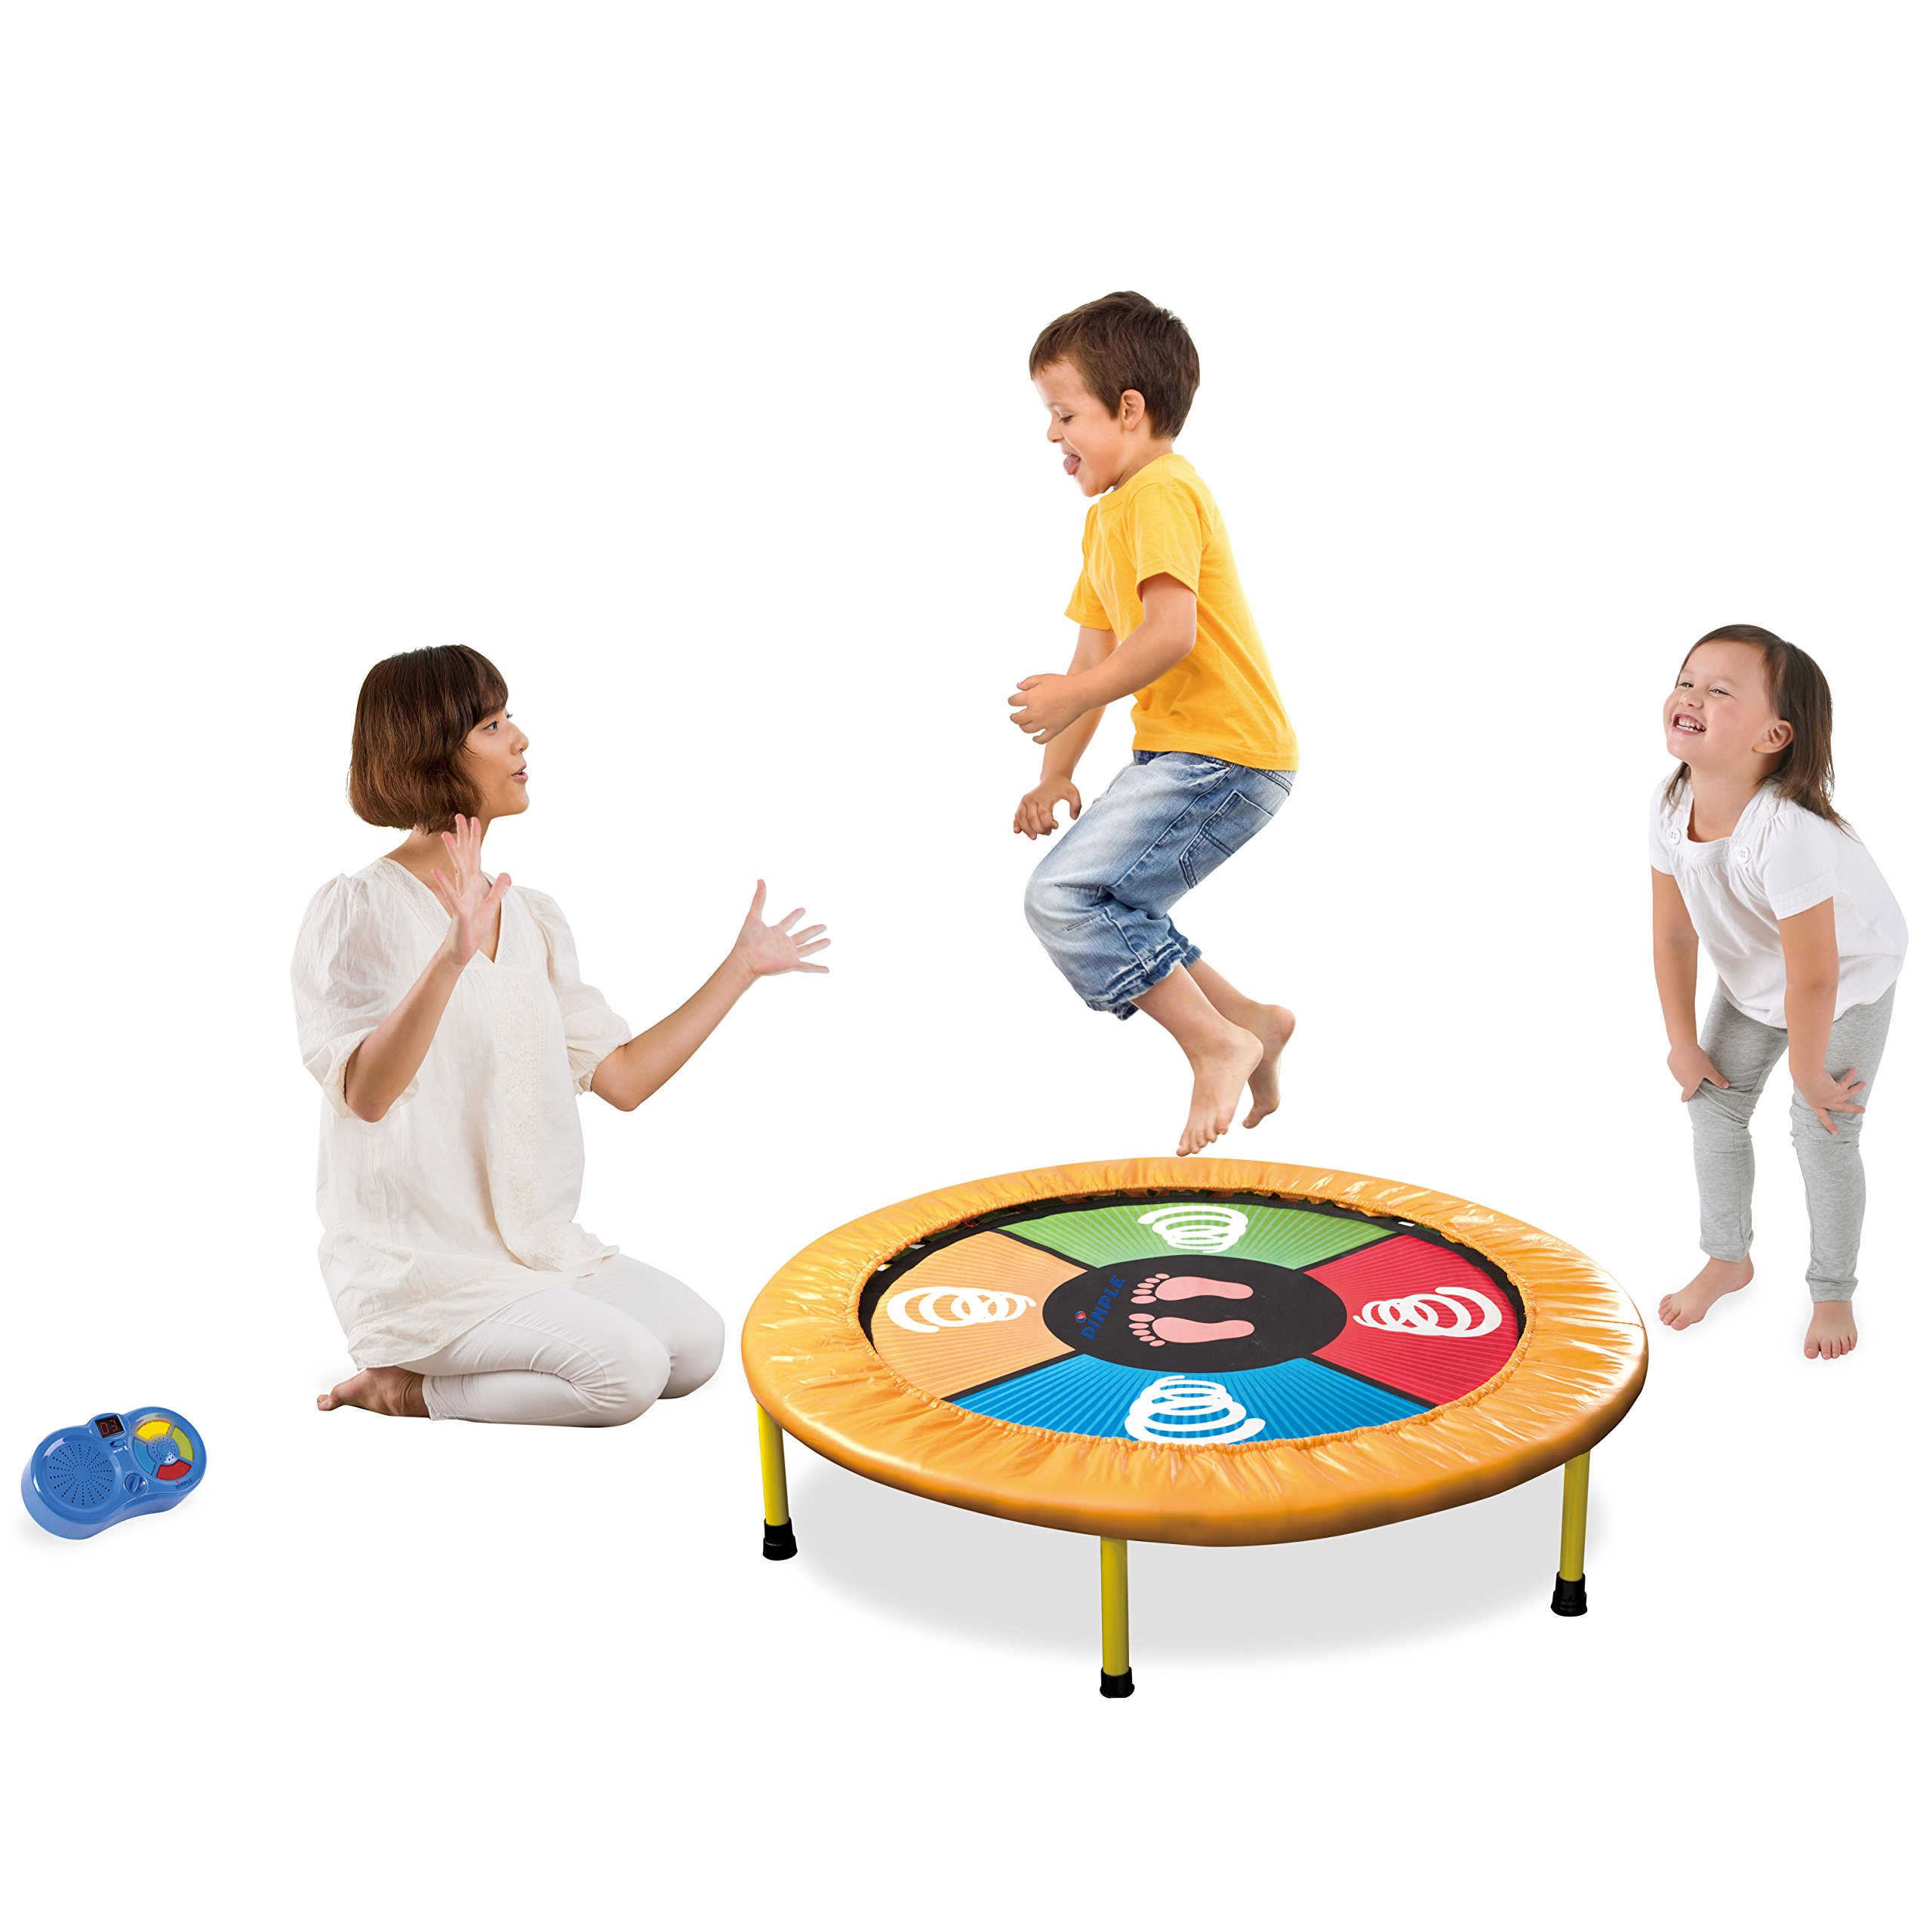 """Dimple """"Dance Jump & Play"""" Kid's Mini Electronic Trampoline, With Exciting Fun Touch Playmat, LED Scoreboard with lights & Sounds, Connects to Smartphone, Great Gift for Children"""